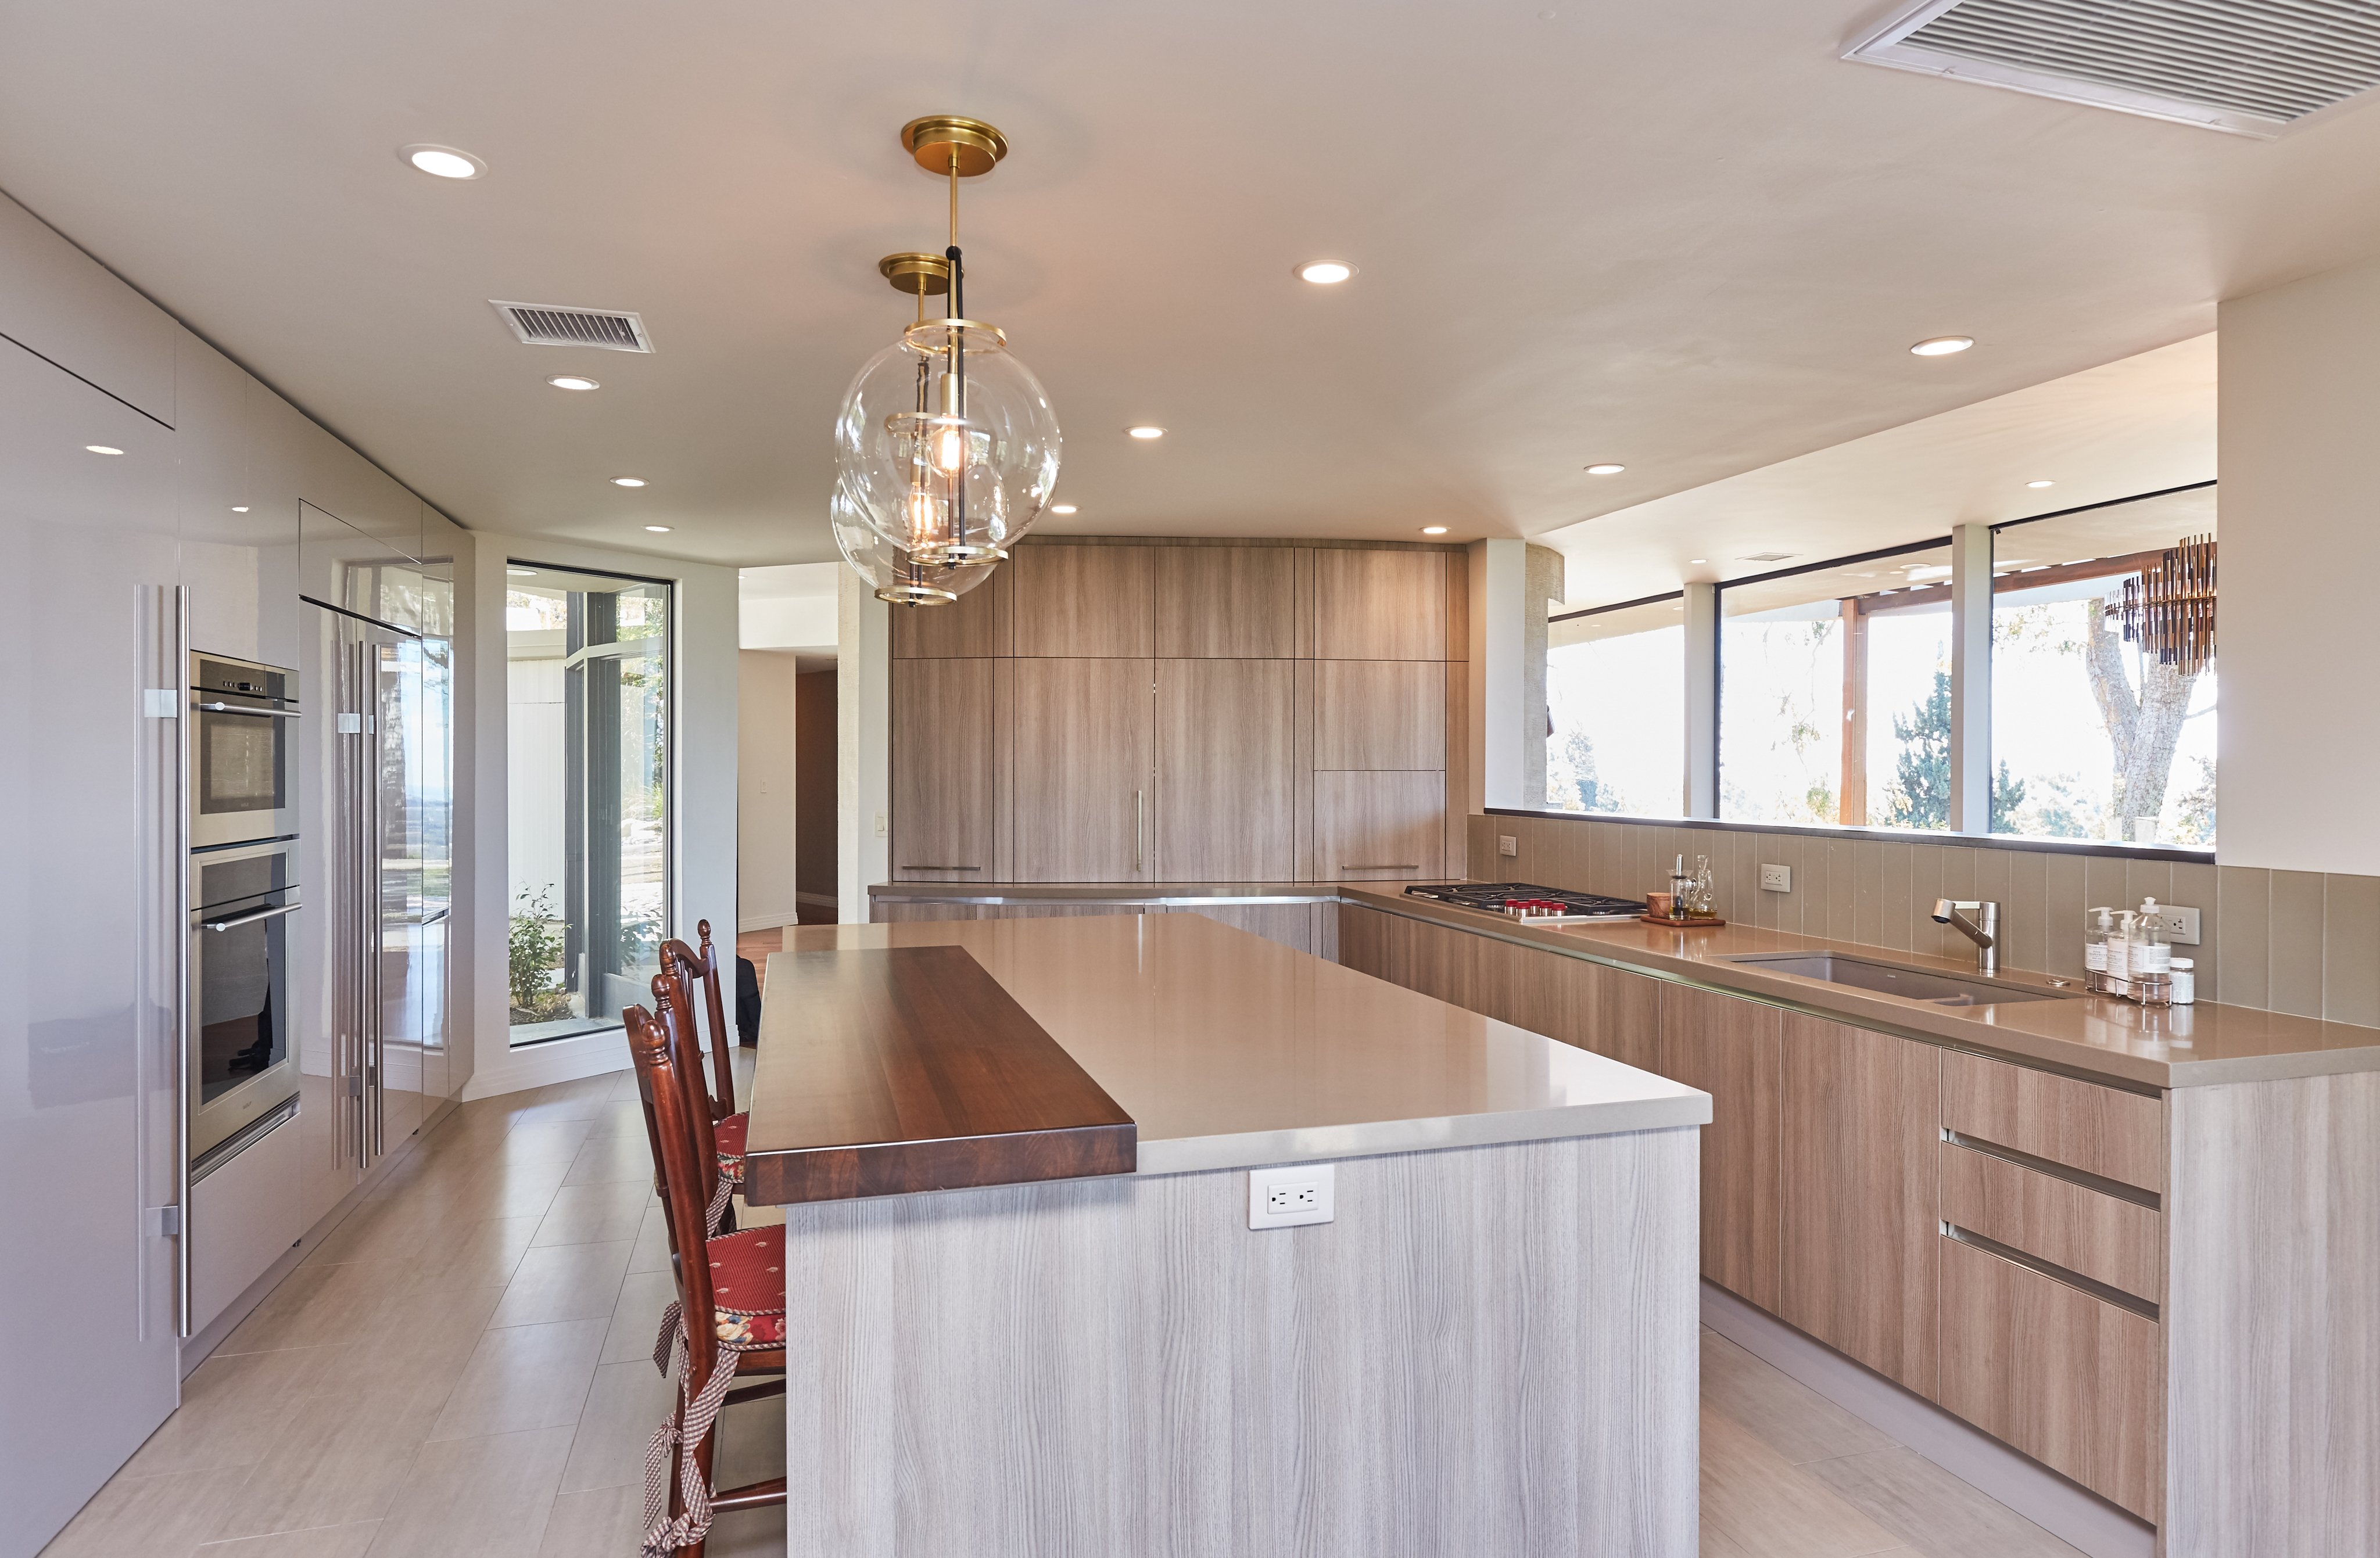 Kitchen Design and Remodel